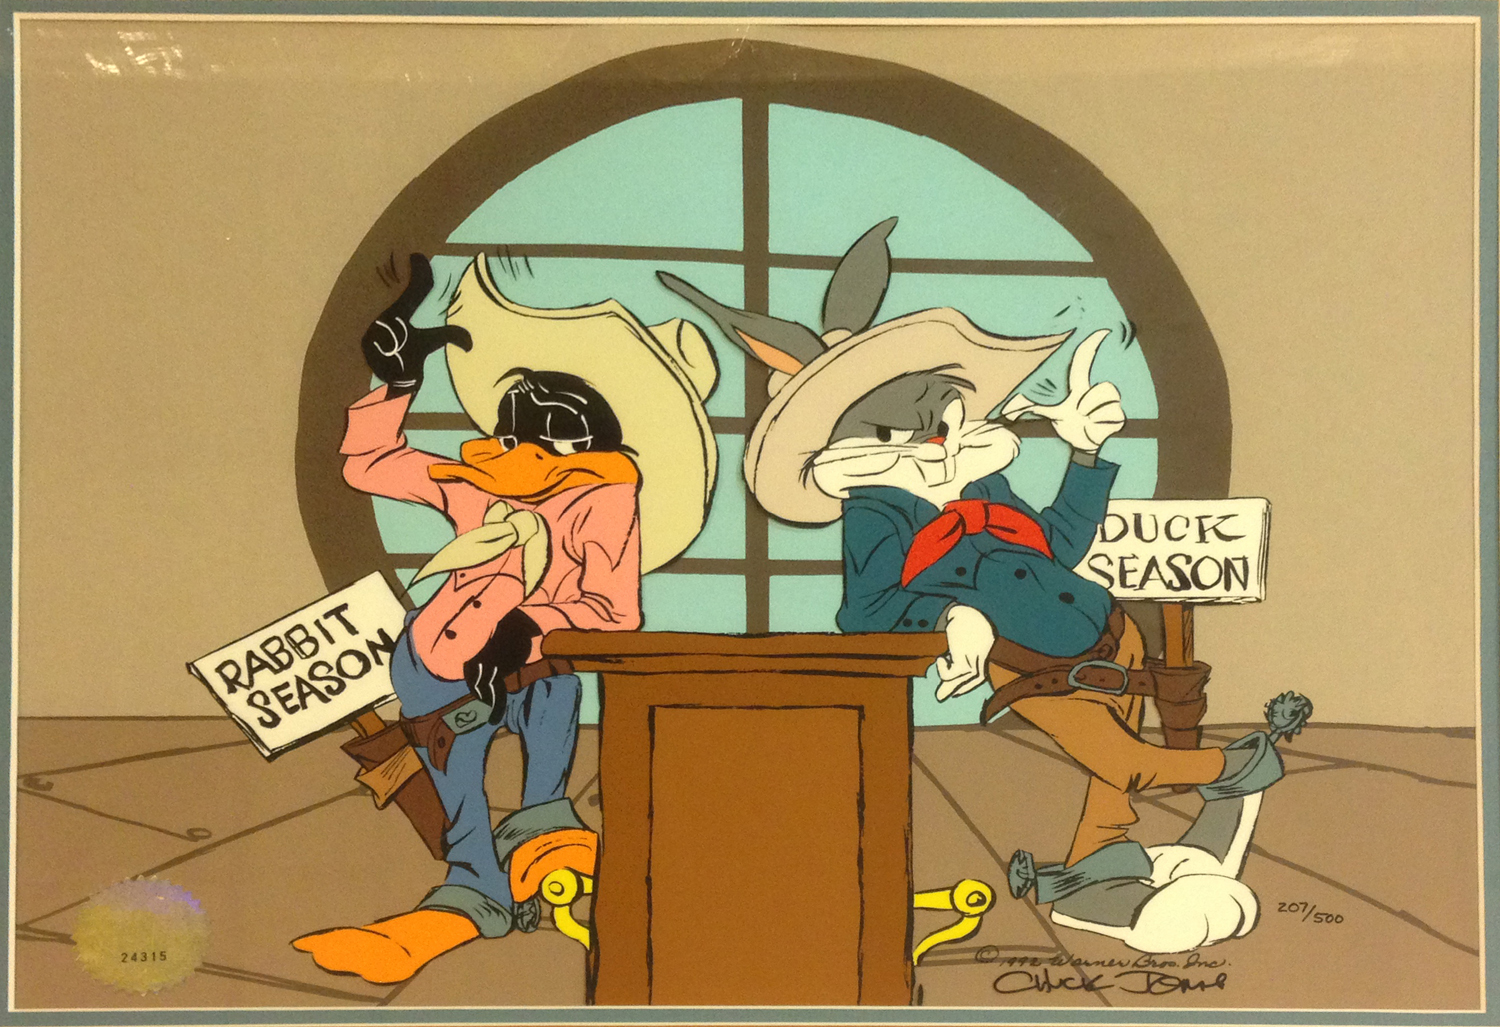 Daffy Duck And Bugs Bunny Show Bugs Bunny And Daffy D...